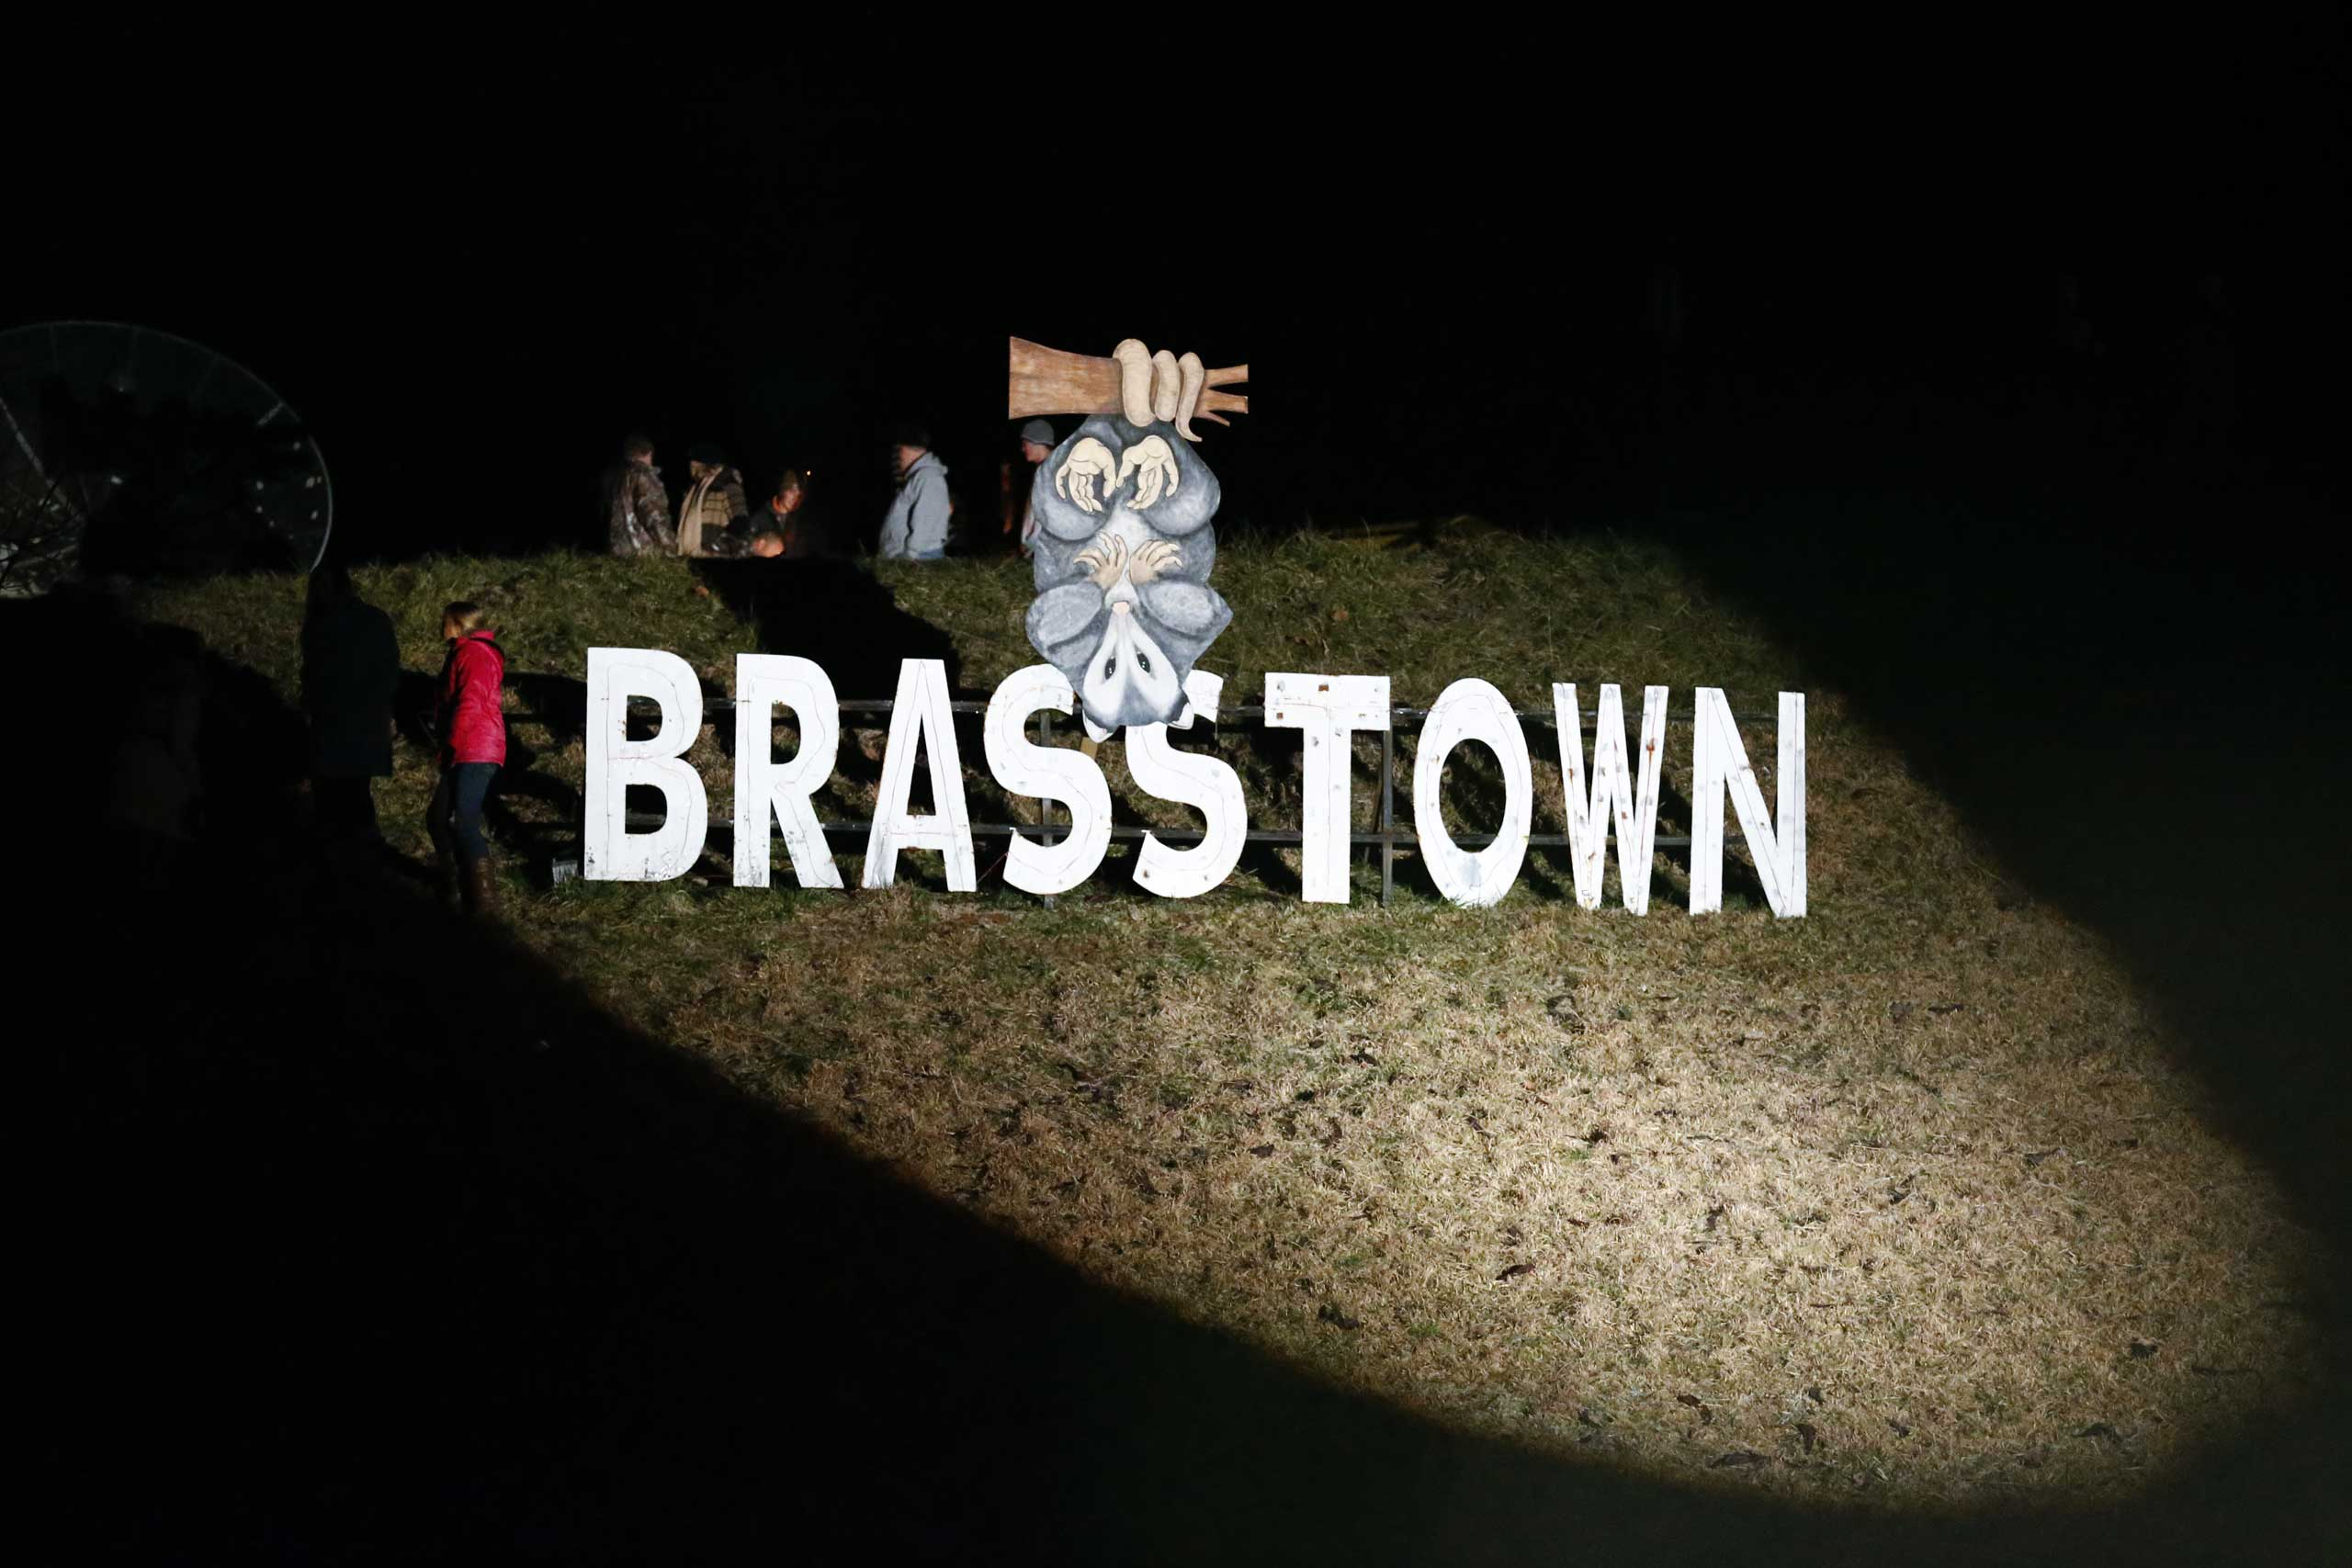 A sign honoring the possums of Brasstown is seen during the 20th annual Possum Drop on New Year's Eve at Clay's Corner in Brasstown, North Carolina, Dec. 31, 2013.